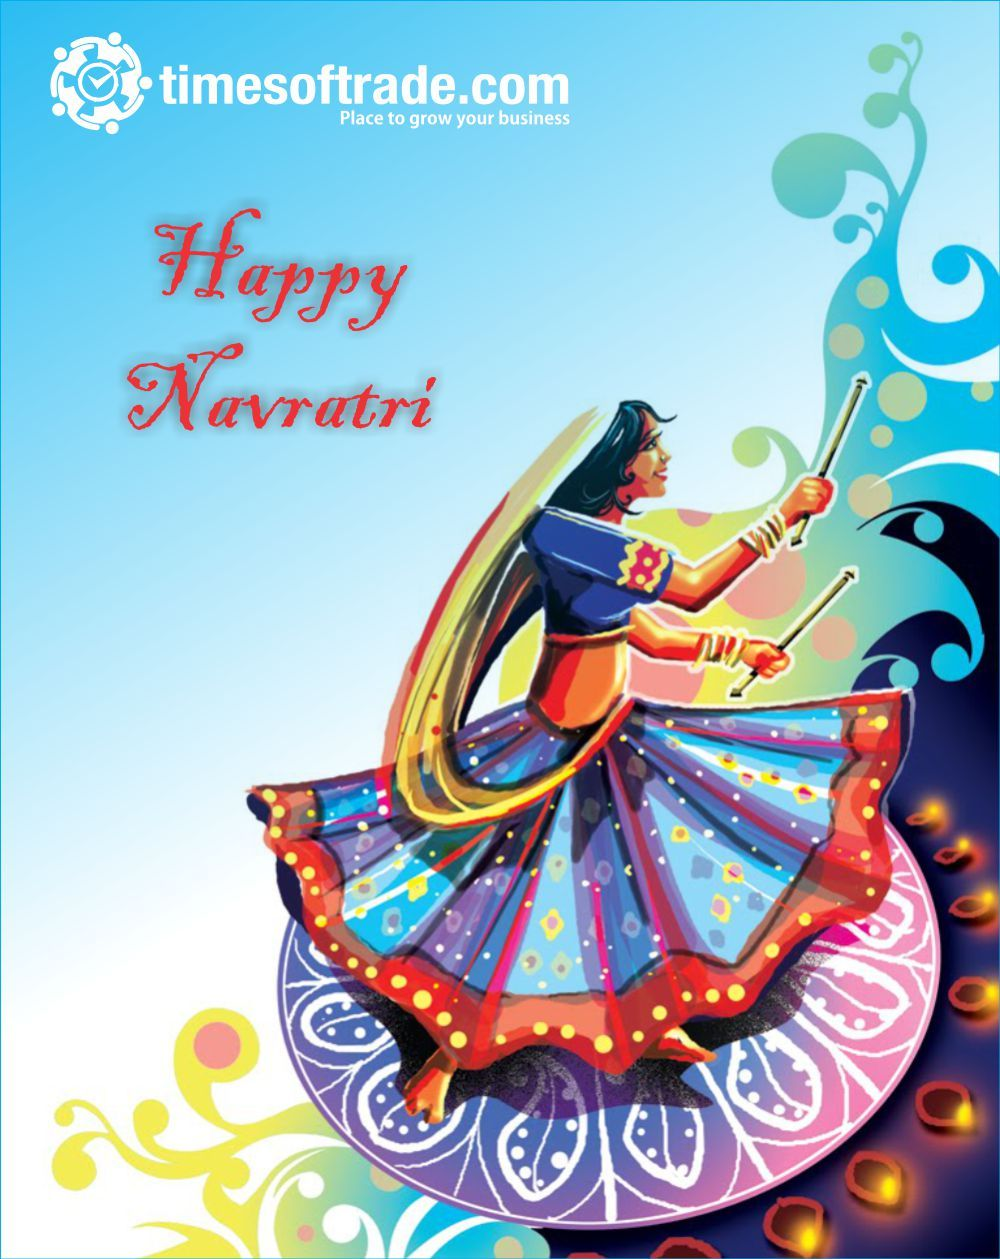 Pin by Times of Trade on Happy Navratri in 2019 | Happy